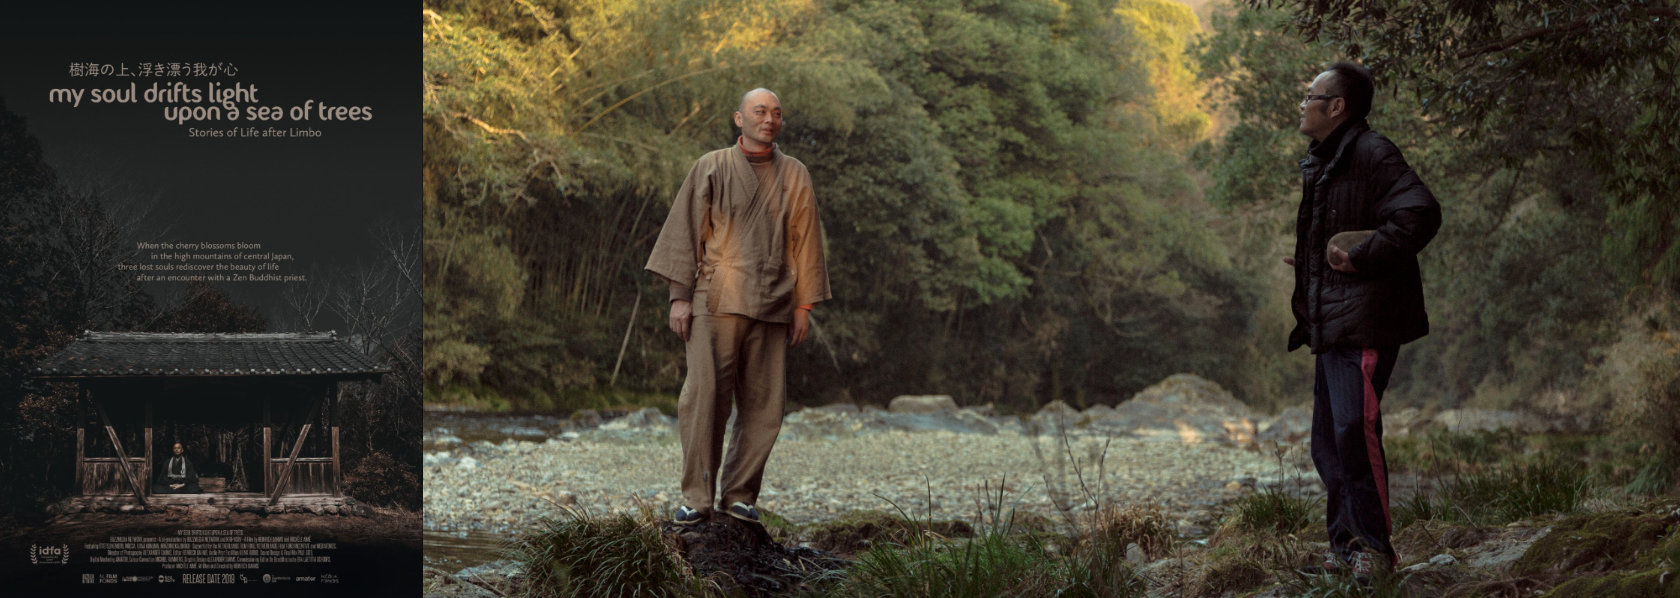 Zen monk talking to a man in a forest - My Soul Drifts Light Upon a Sea of Trees - THIS Buddhist Film Festival